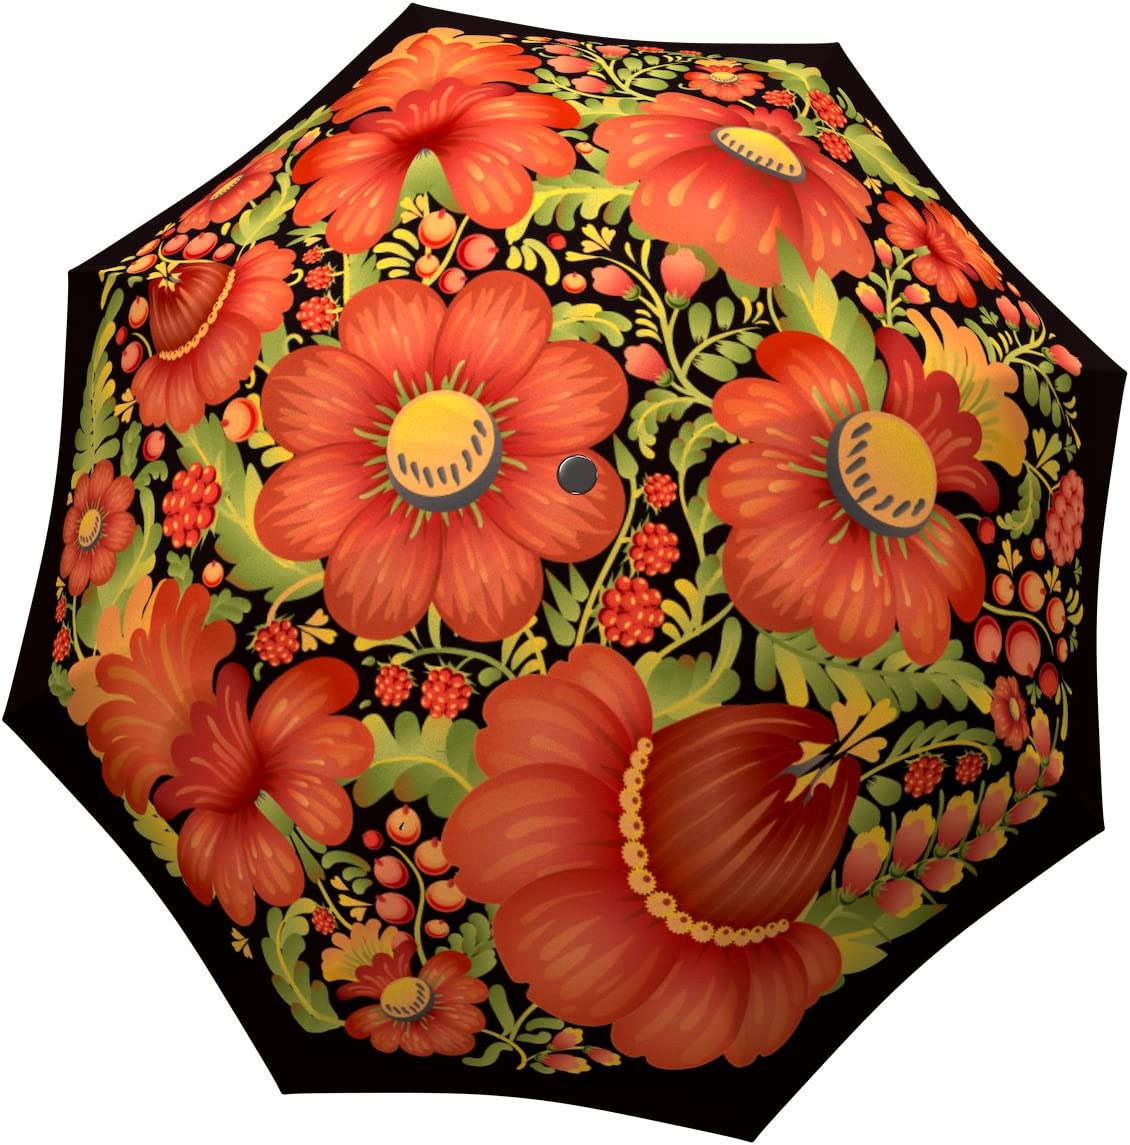 Blue Floral With Artistic Effect Compact Travel Umbrella Windproof Reinforced Canopy 8 Ribs Umbrella Auto Open And Close Button Customized